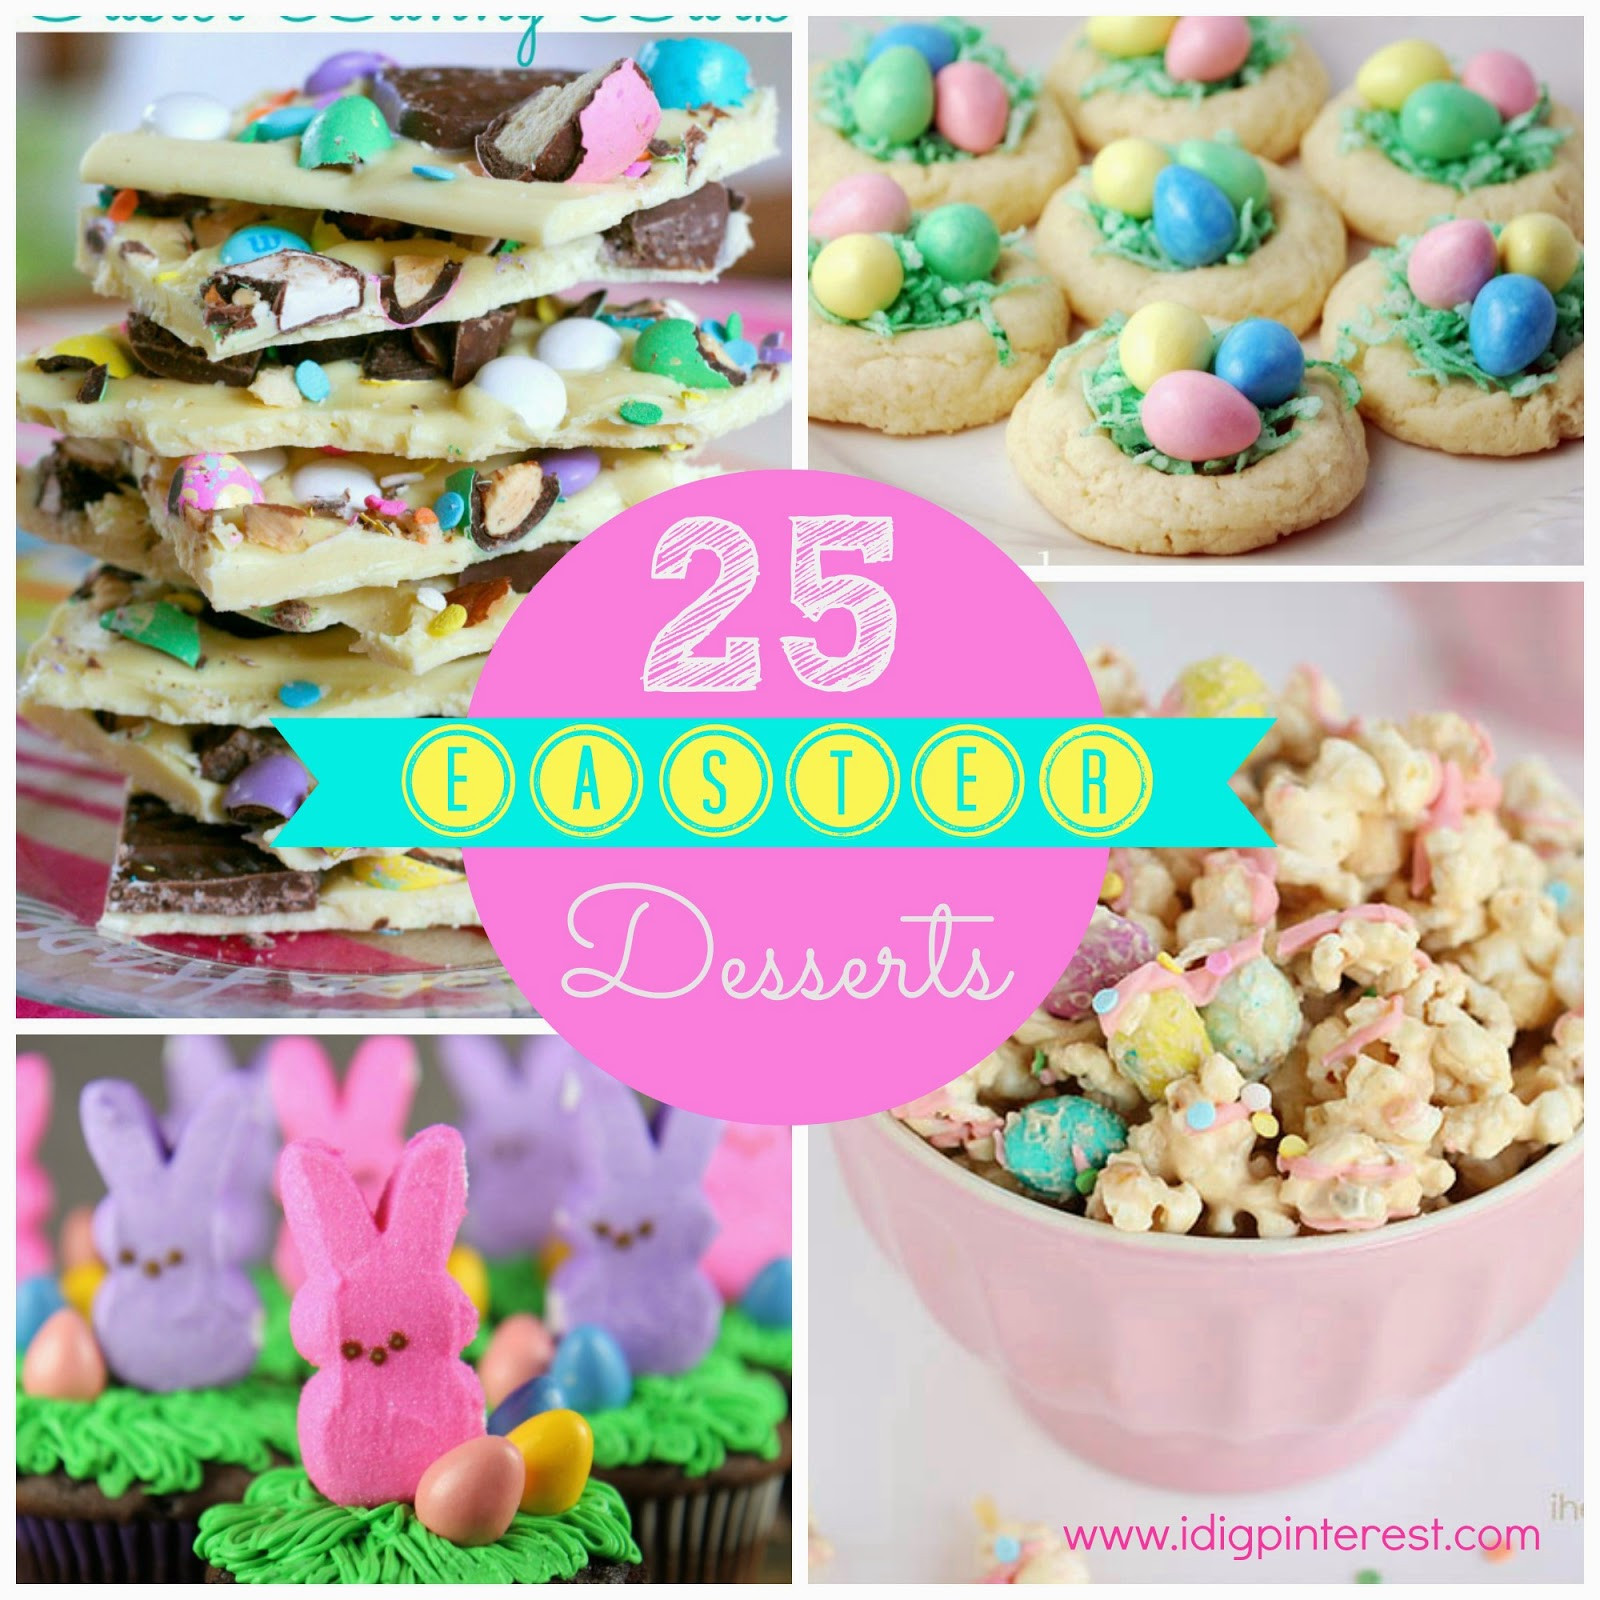 Easter Desserts Pinterest  25 Pretty & Yummy Easter Desserts I Dig Pinterest